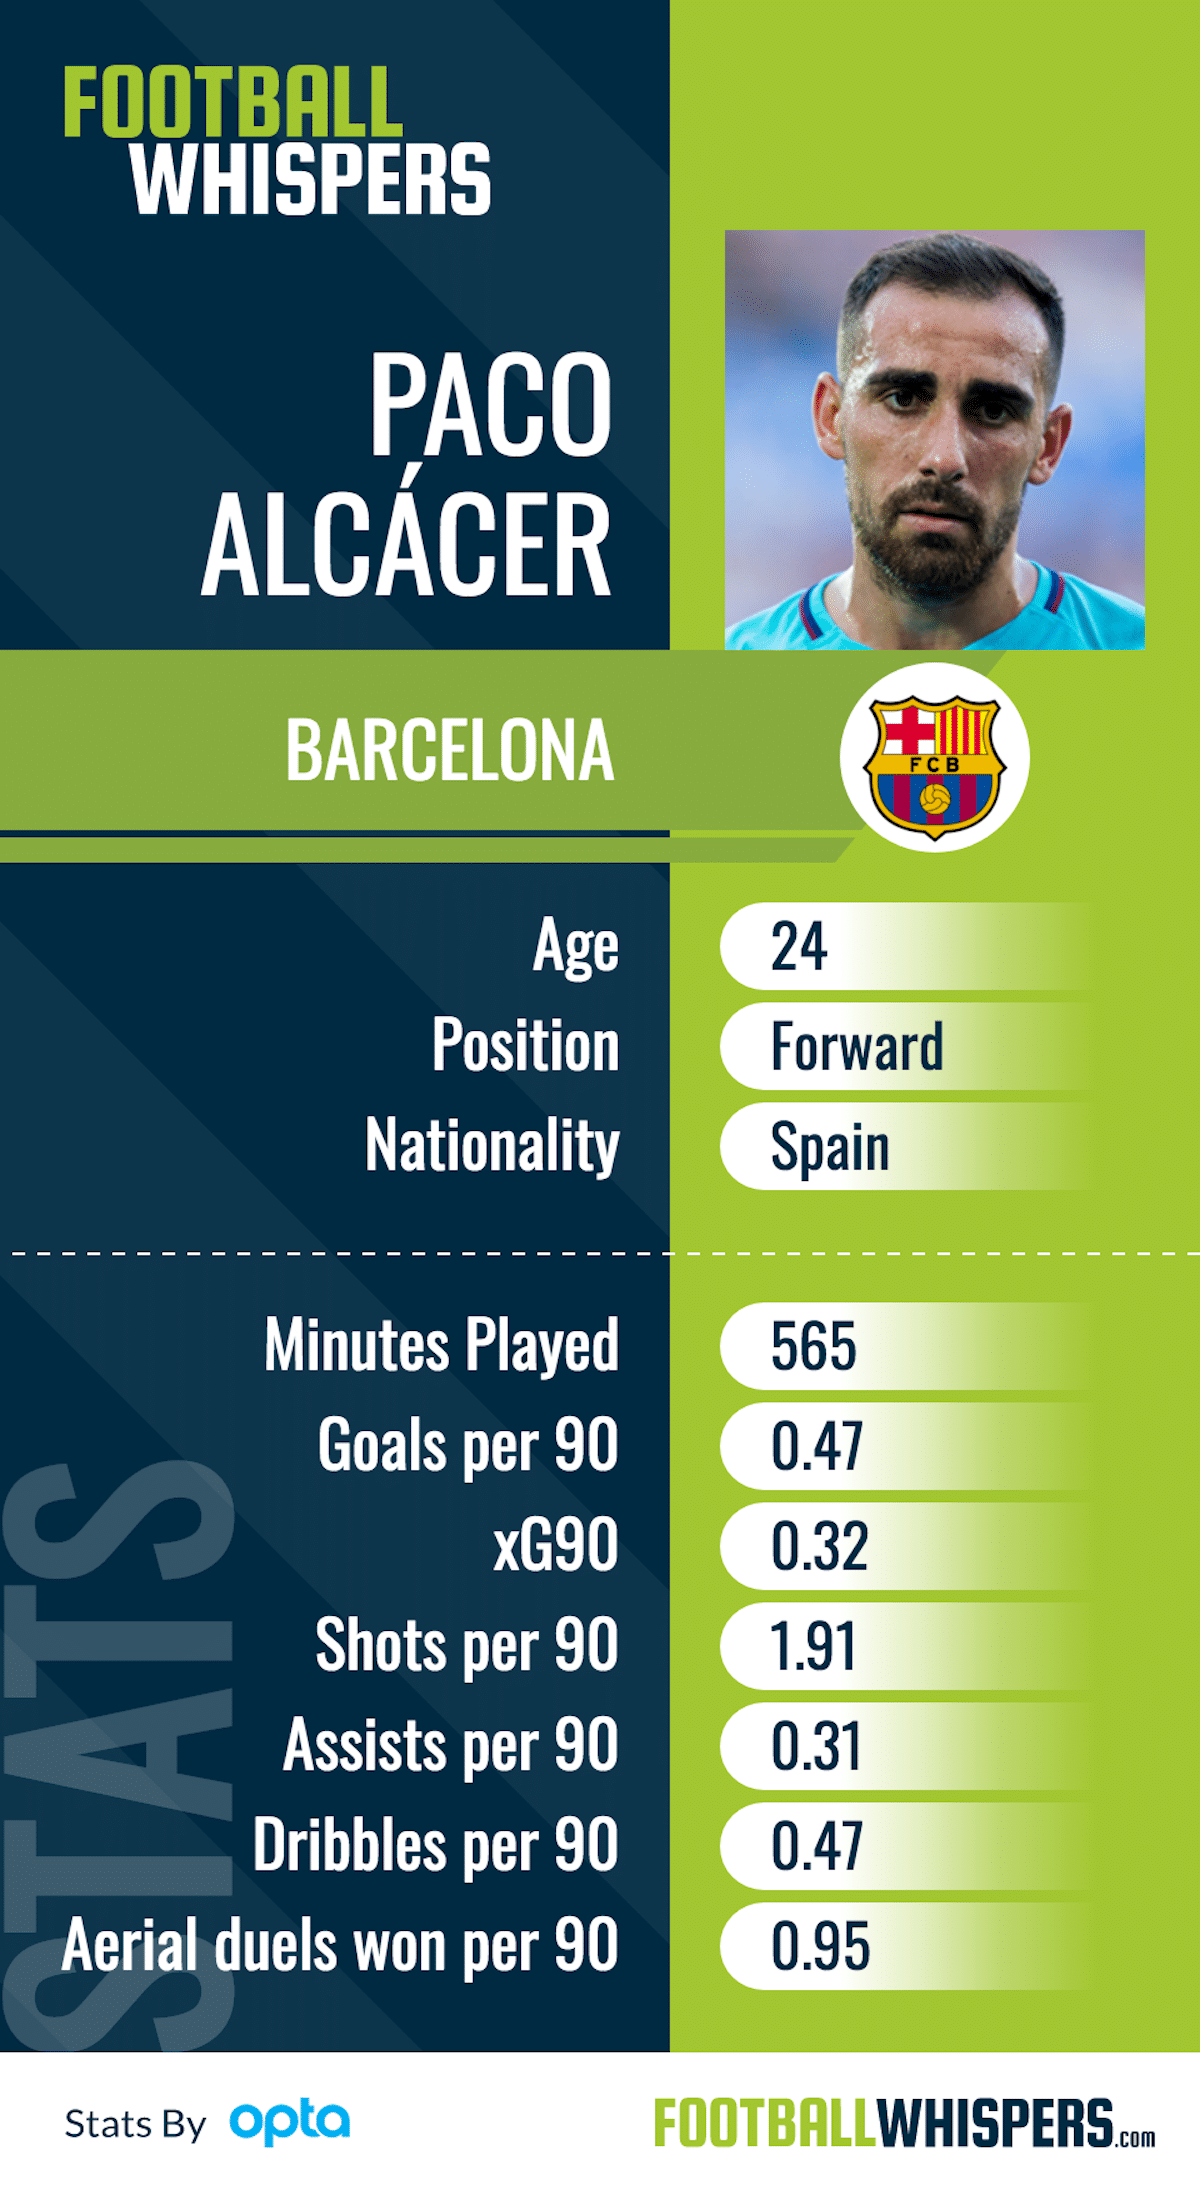 The key stats for Barcelona striker Paco Alcácer this season